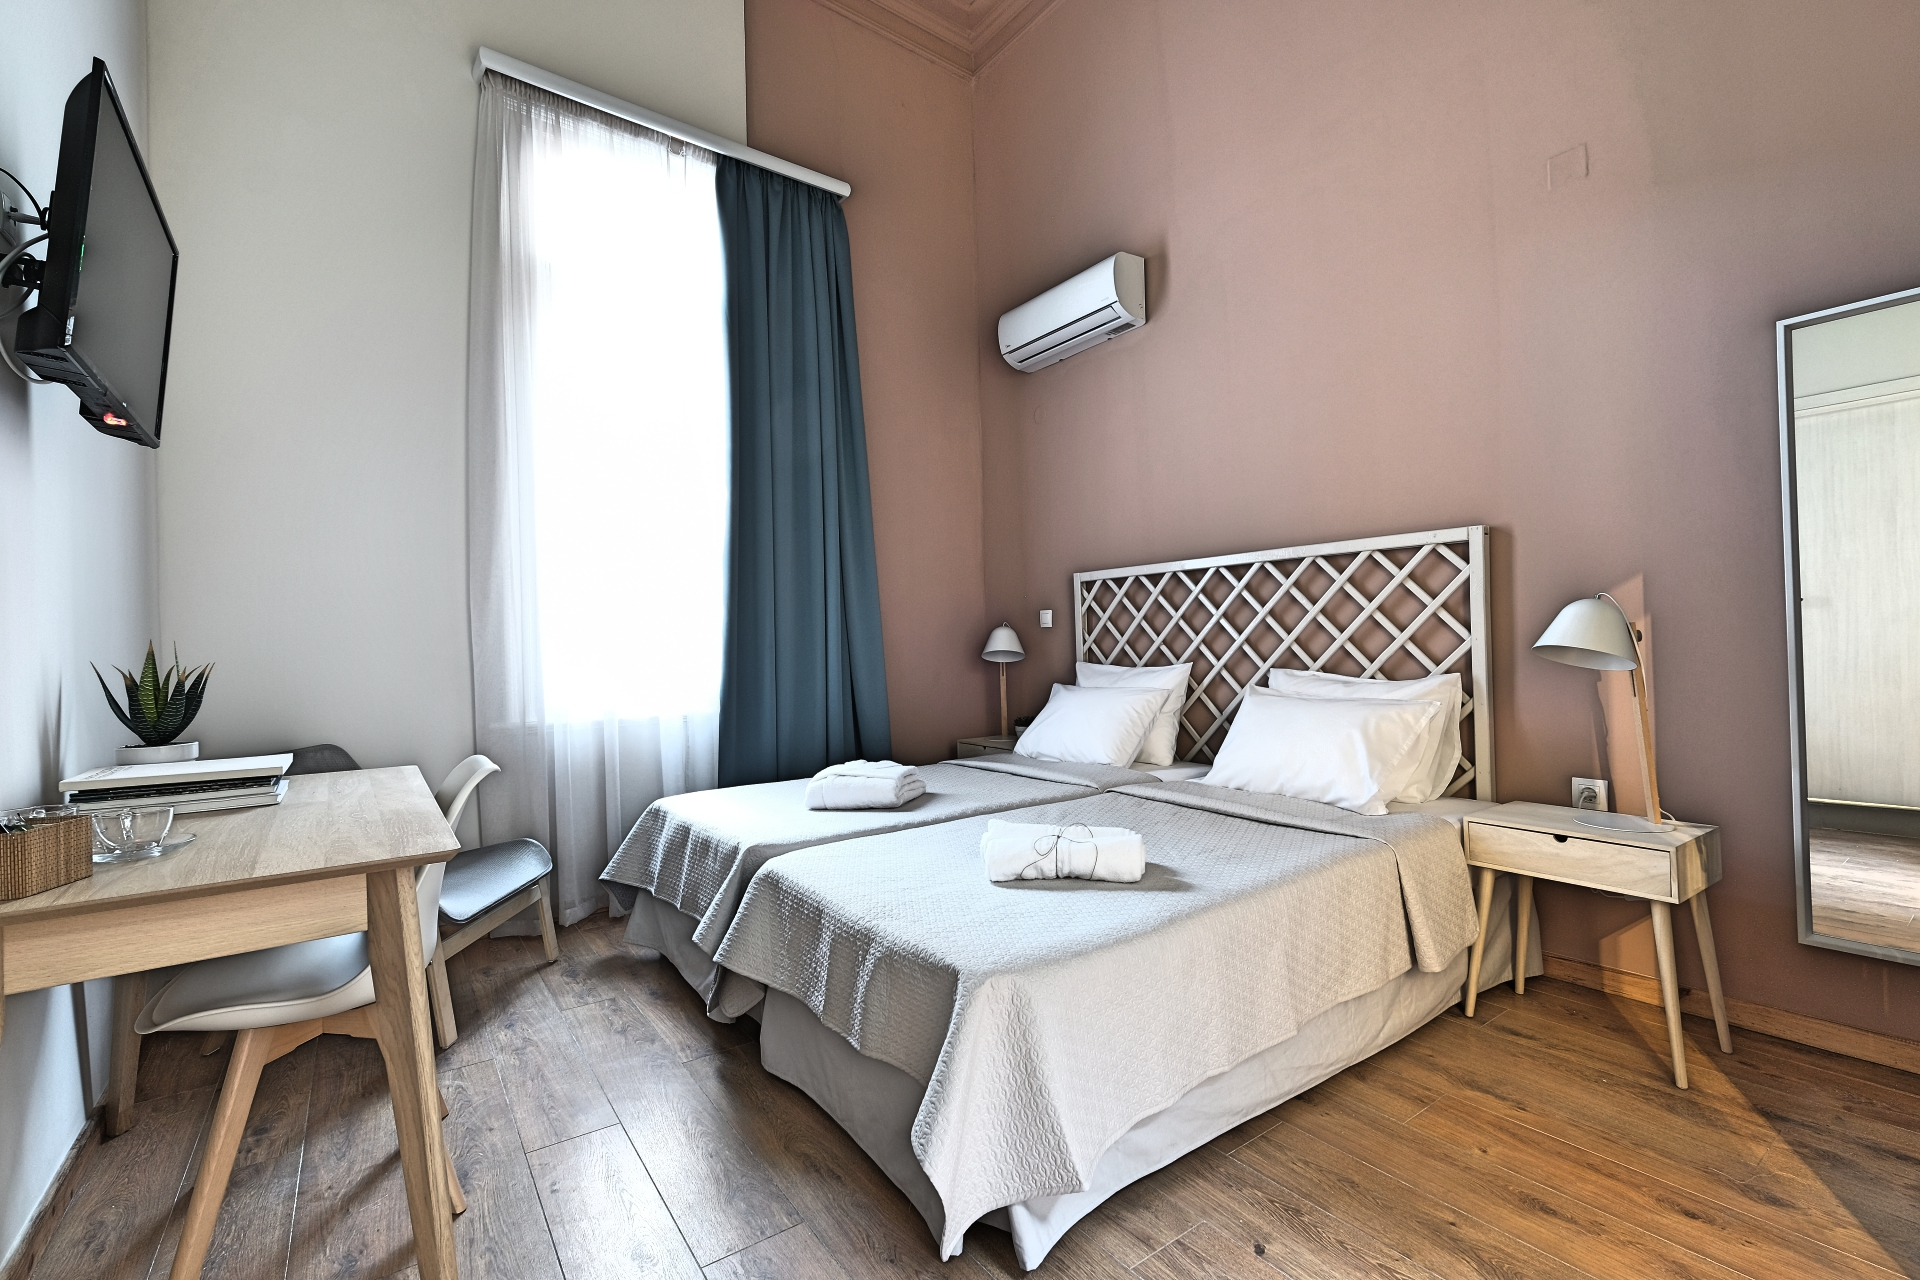 Standard Double Room with Twin Beds 1 - Agora Residence - Hotel in Chios